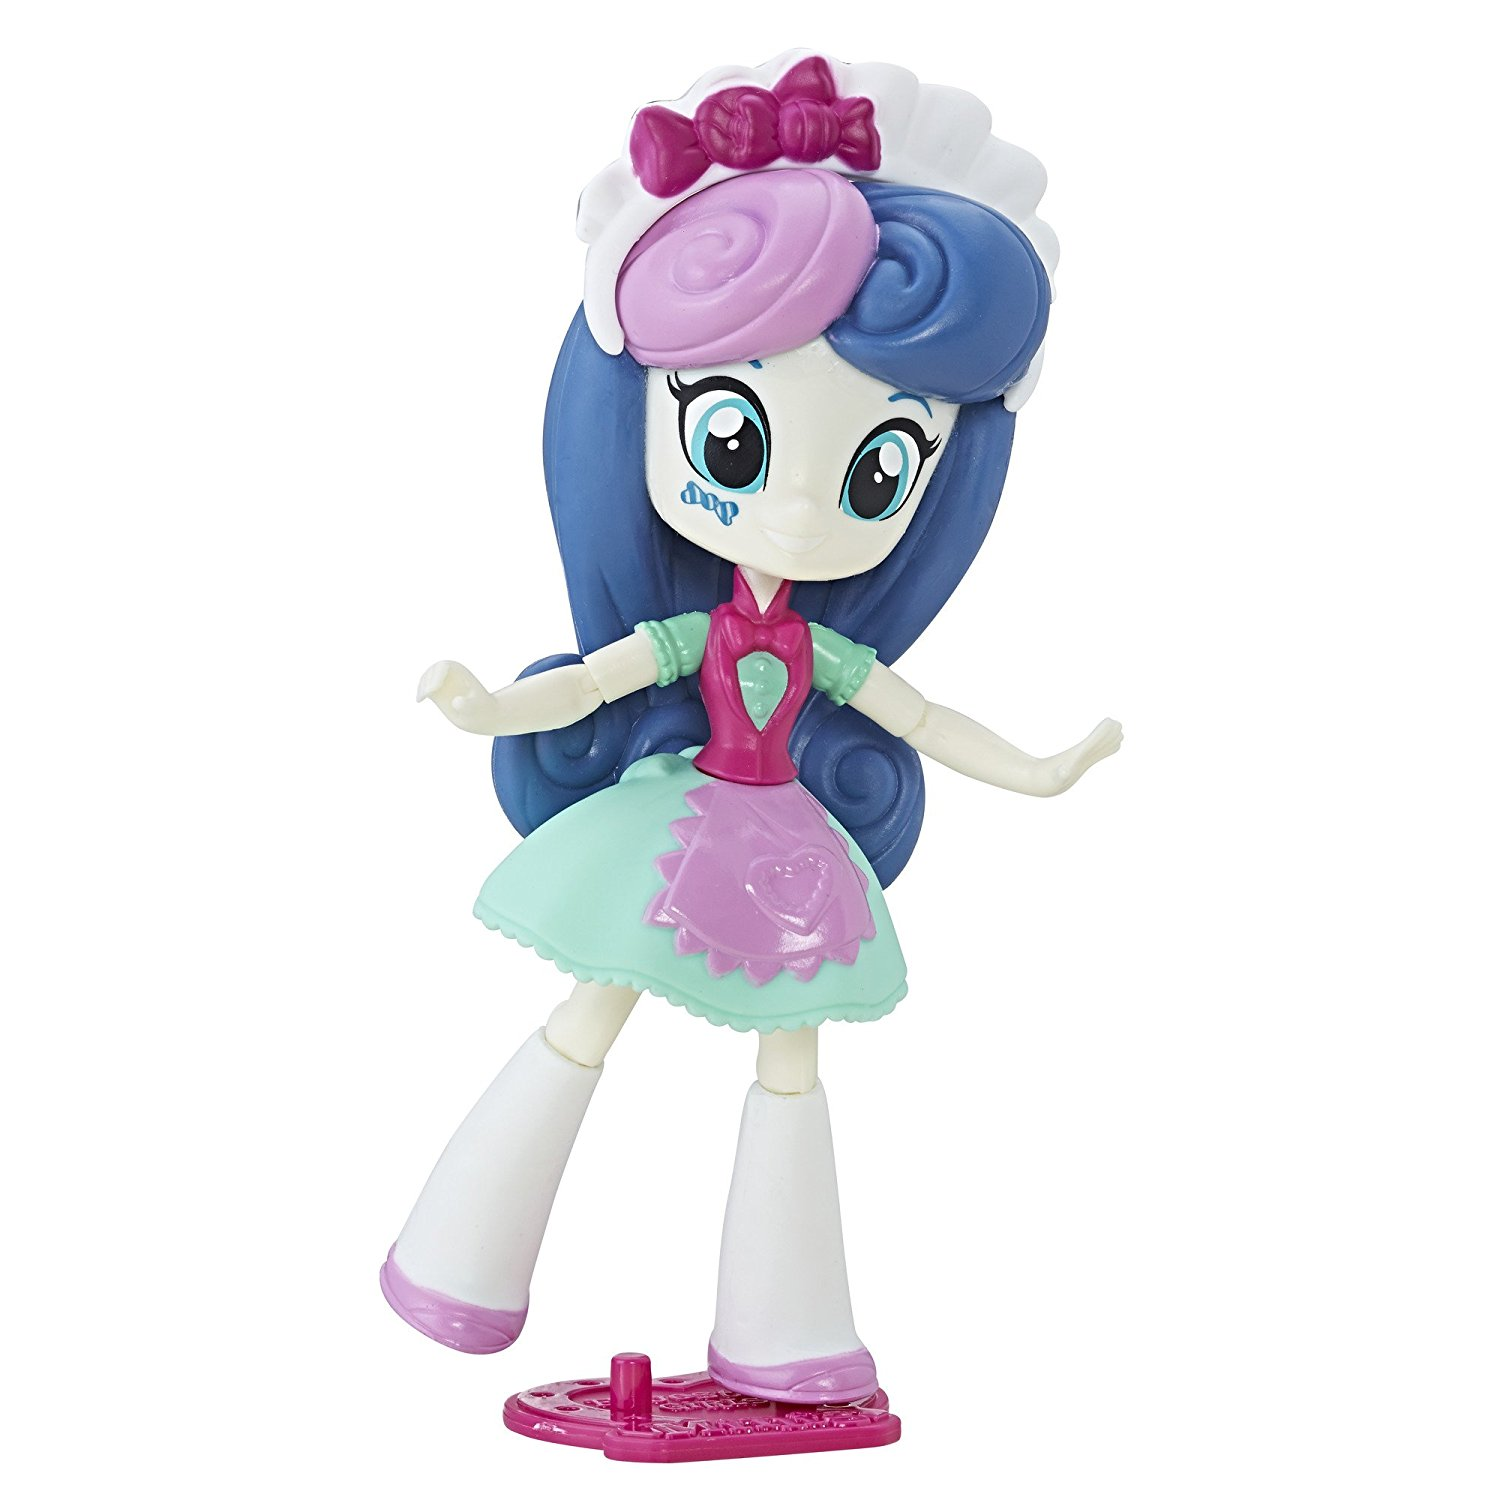 Equestria Girls Mall Collection Sweetie Drops, Poseable with 9 points of articulation By My Little Pony Ship from US